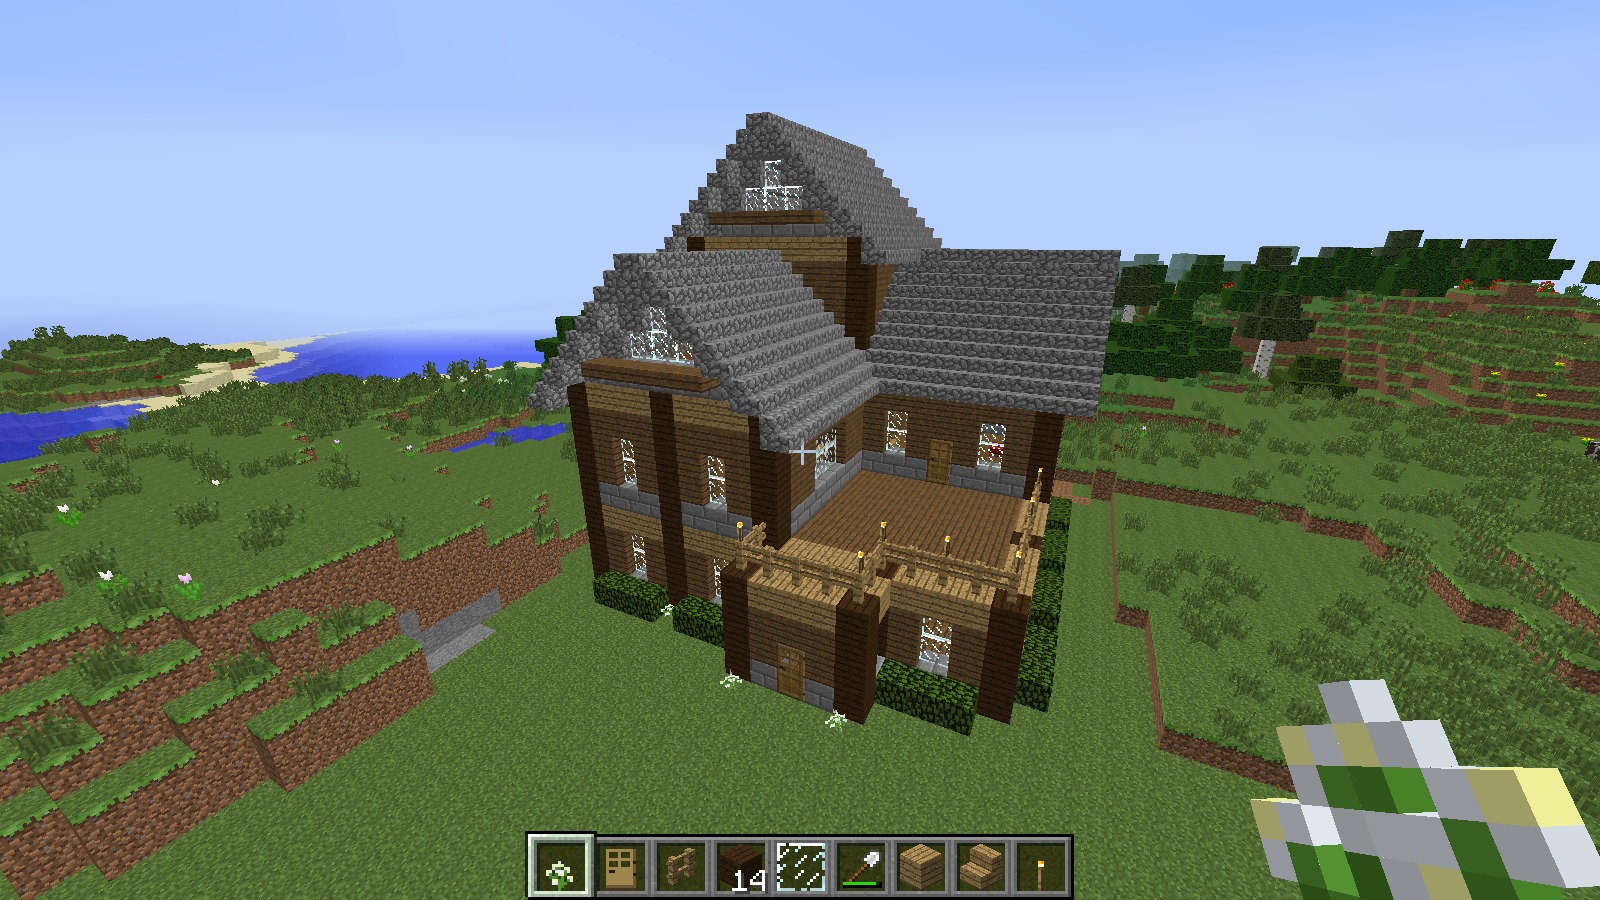 Sweet Houses To Build In Minecraft